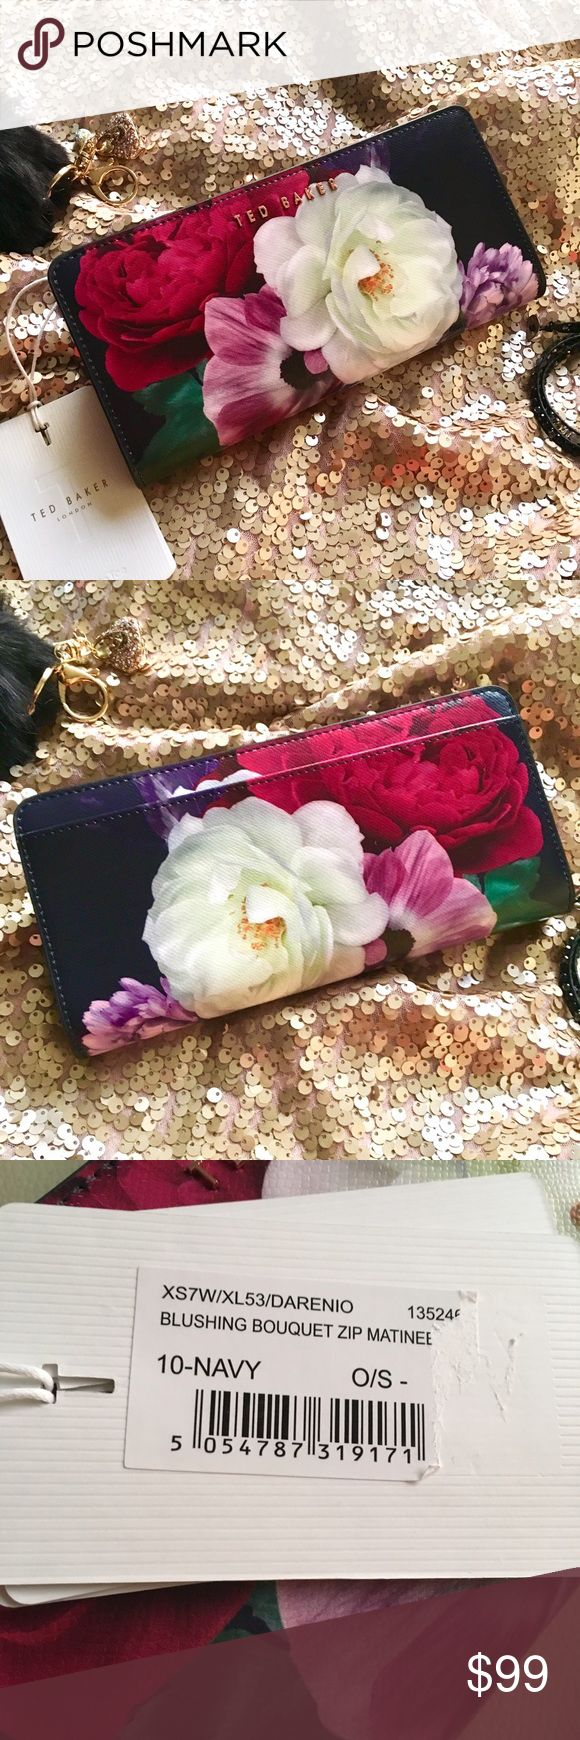 NWT Ted Baker bouquet zip matinee wallet New listing! NWT Ted Baker blushing bouquet navy and floral zip matinee wallet, with beautiful rose gold hardware. Photos don't do this wallet justice! Ted Baker Bags Wallets